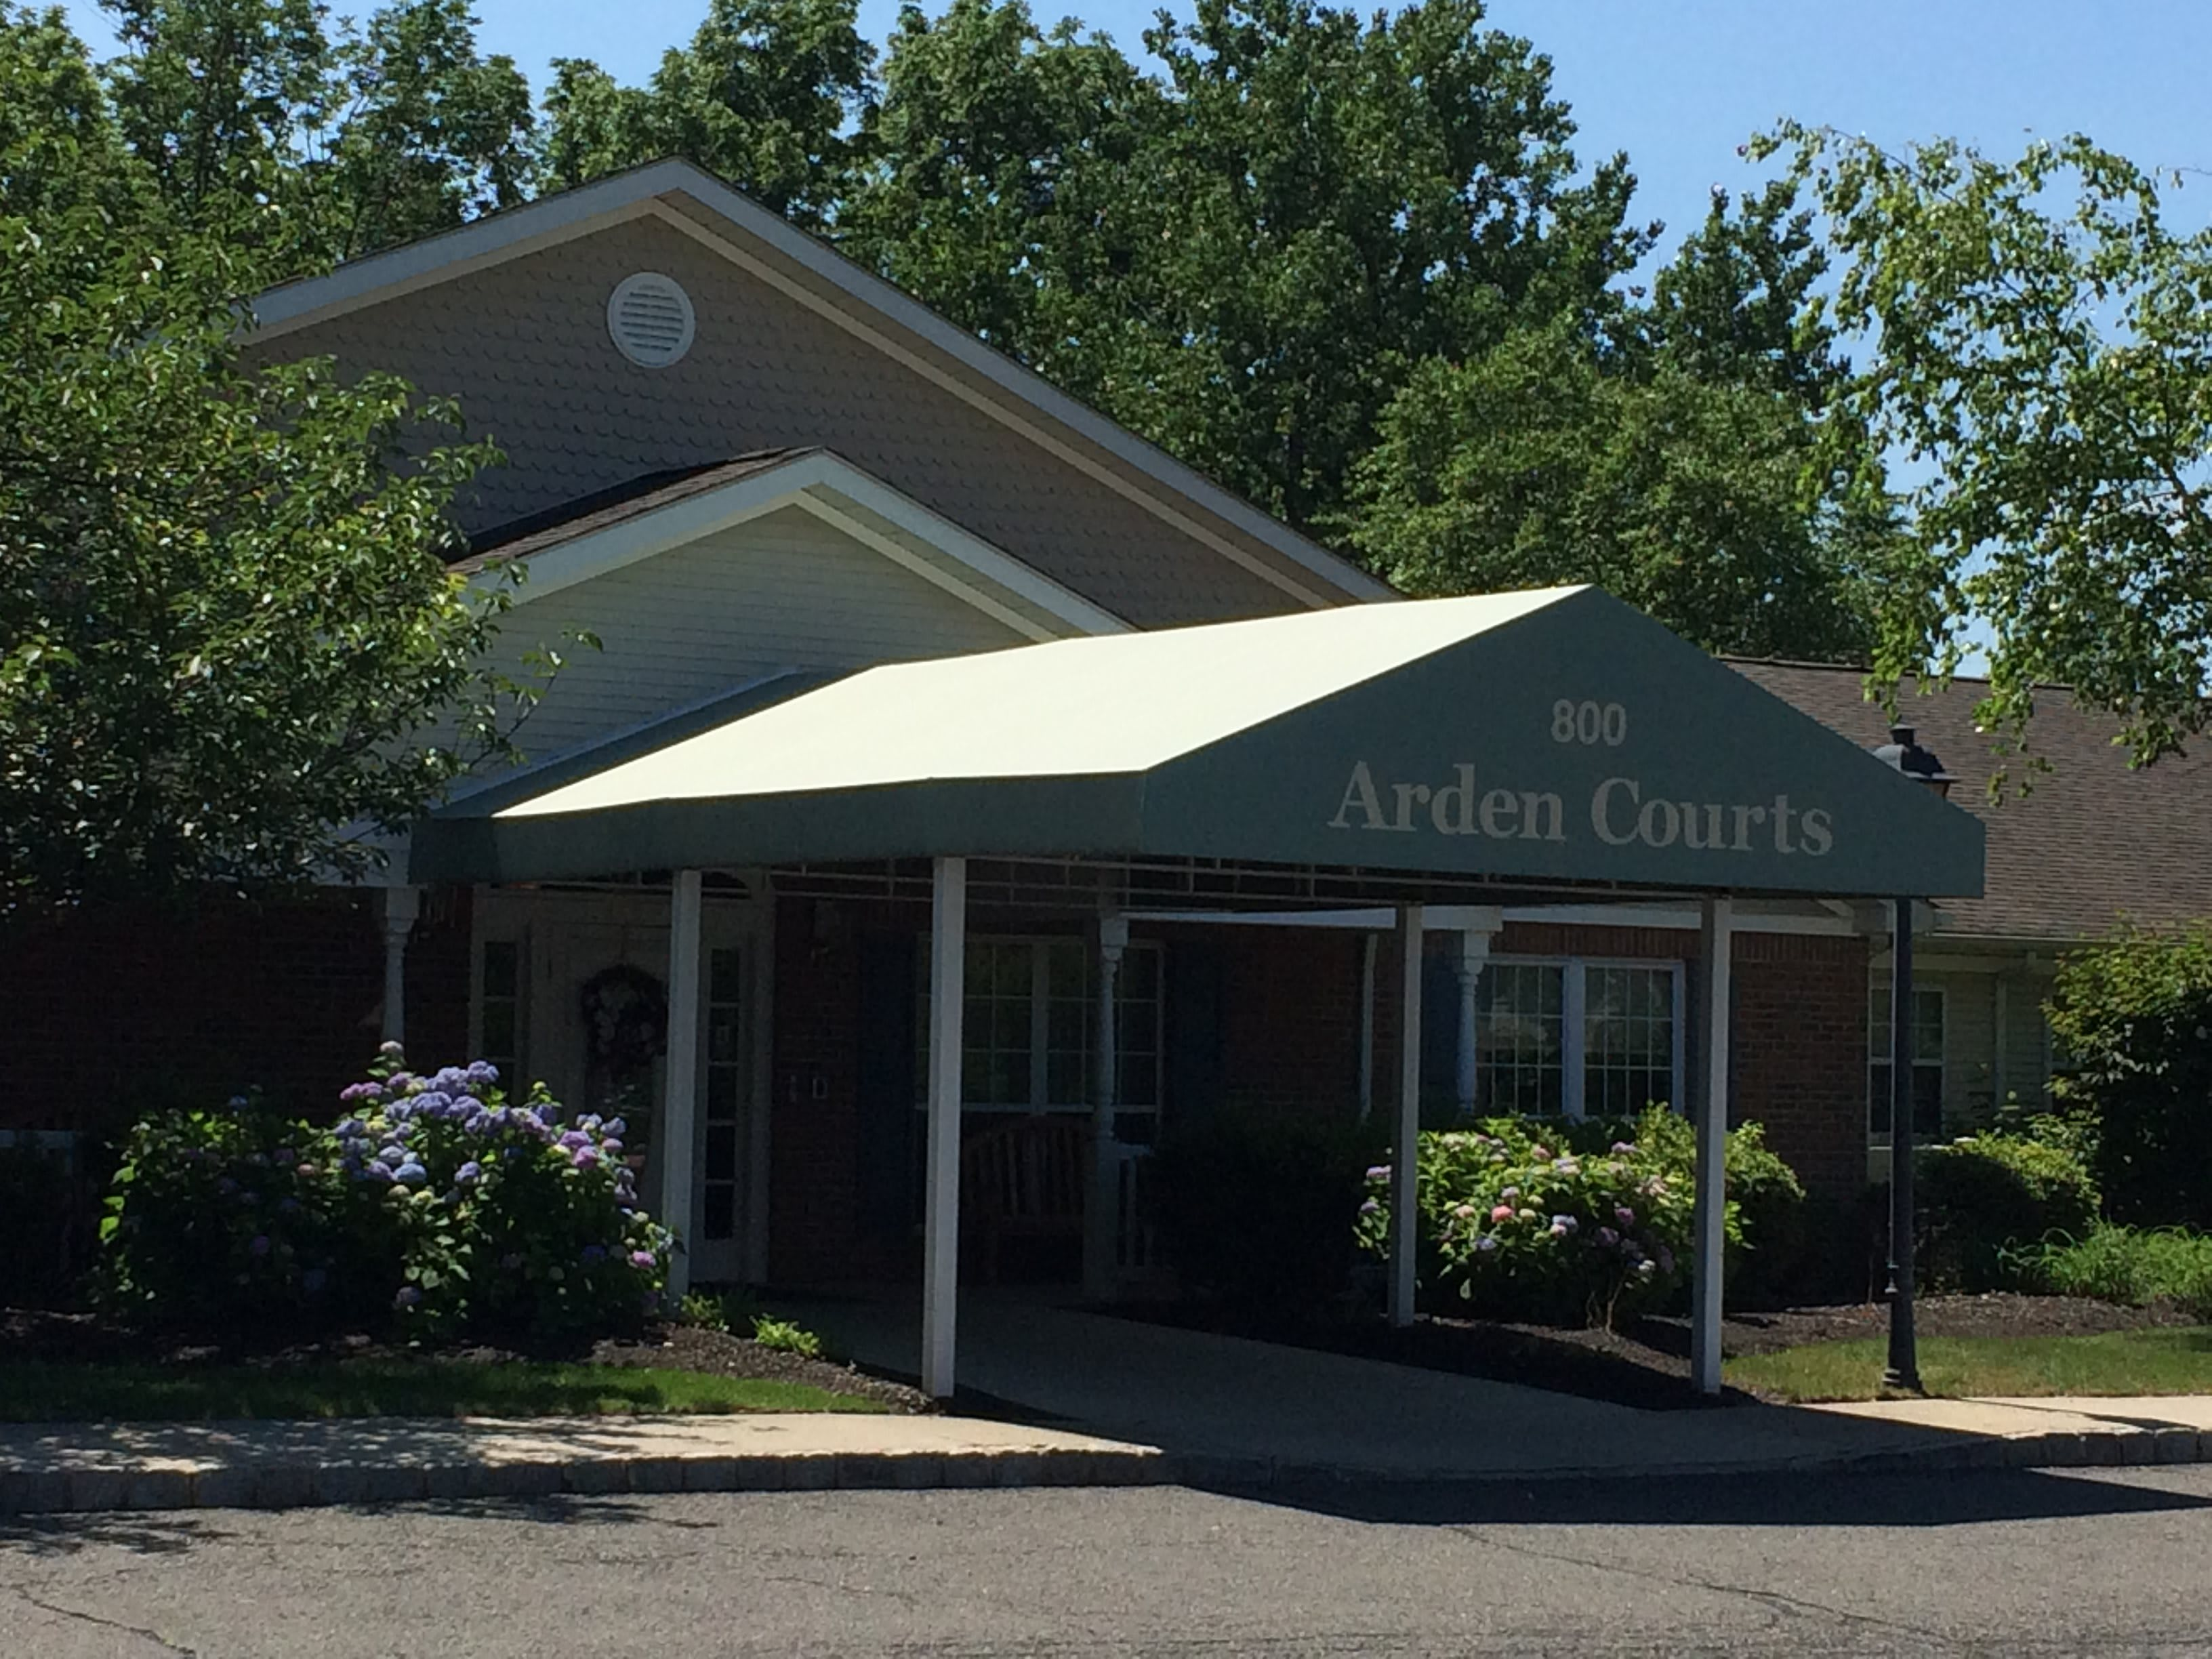 Photo 1 of Arden Courts of Wayne